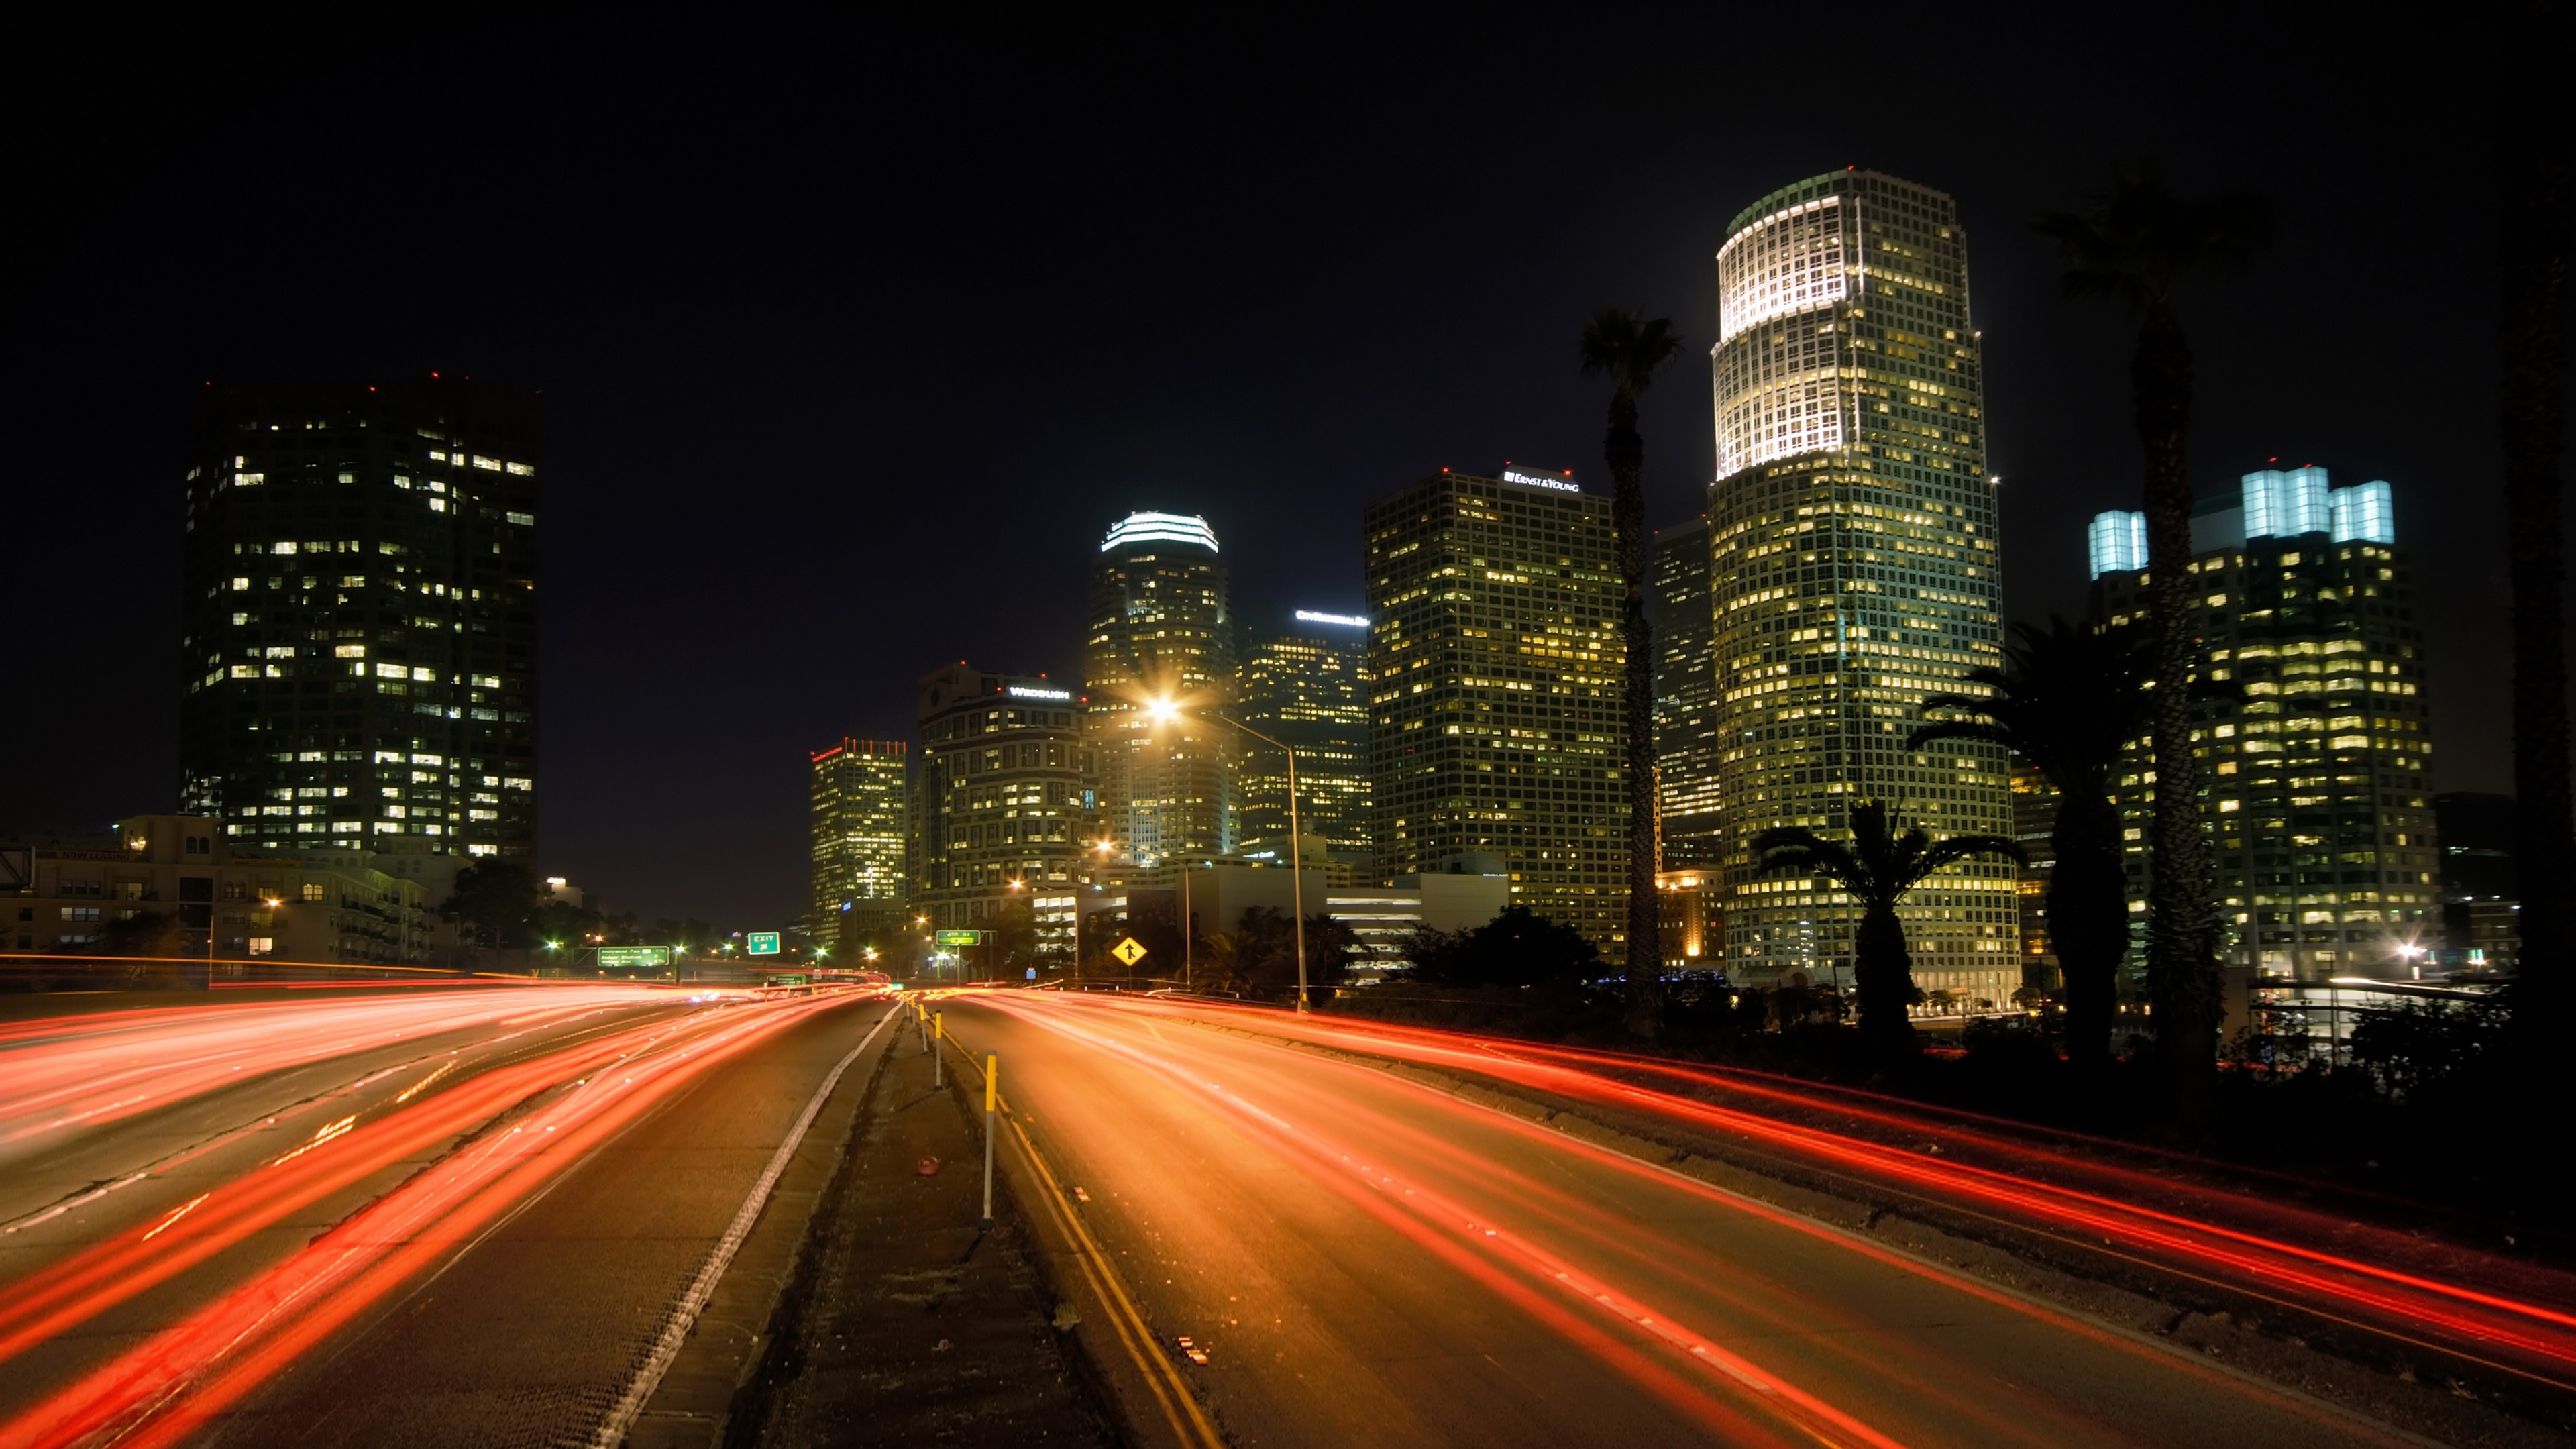 Download Wallpaper 3840x2160 City Night Lights Road Los angeles 4K 3840x2160